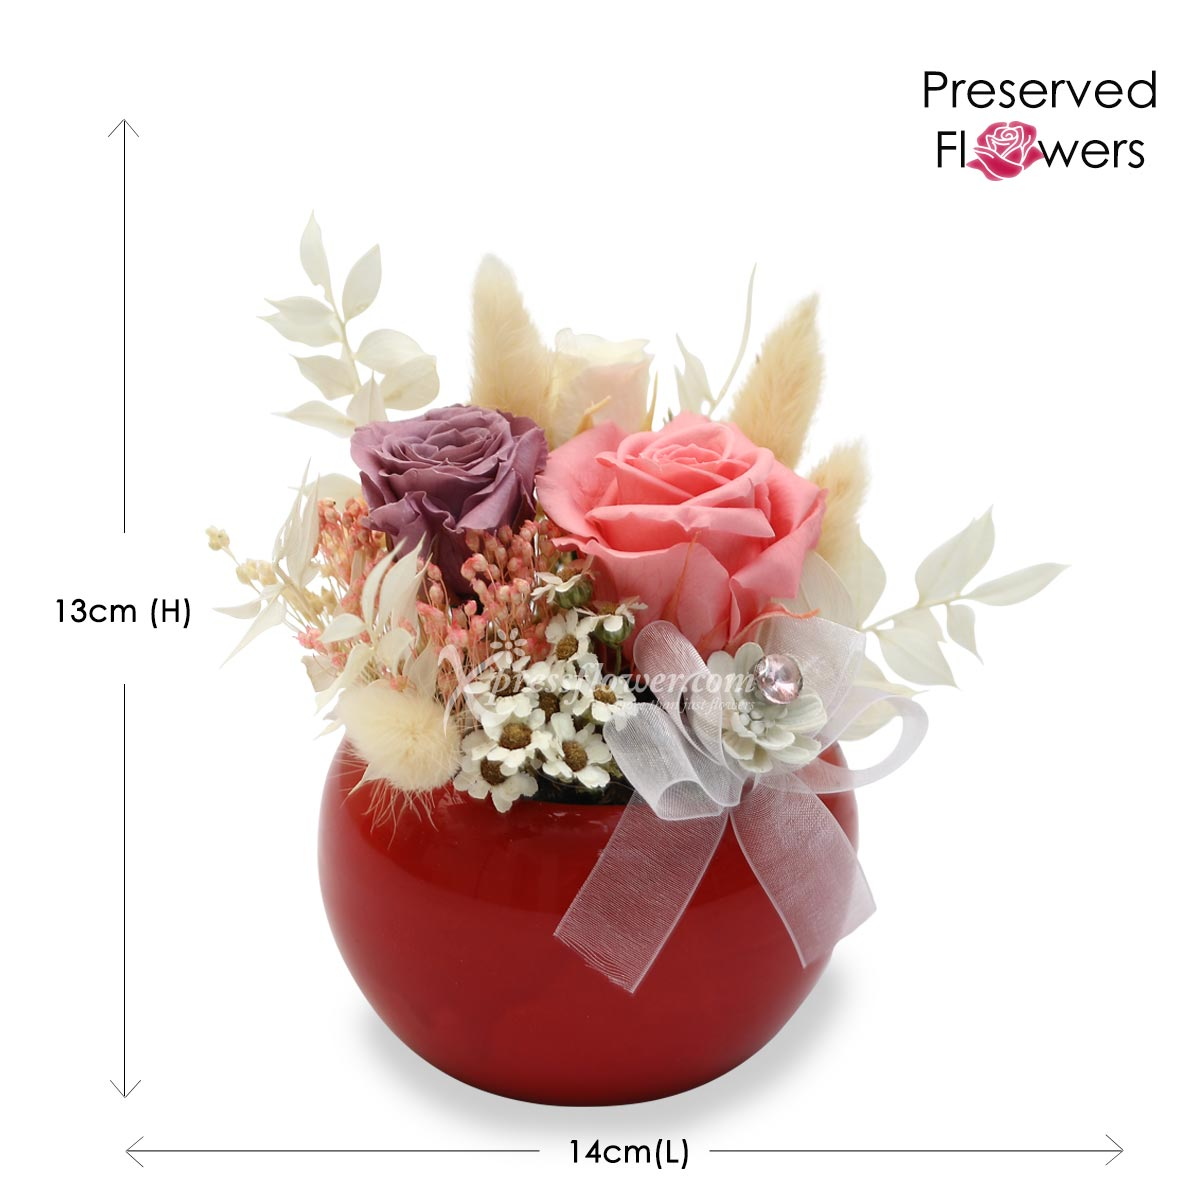 PR2022 Passion Blooms Preserved Flowers